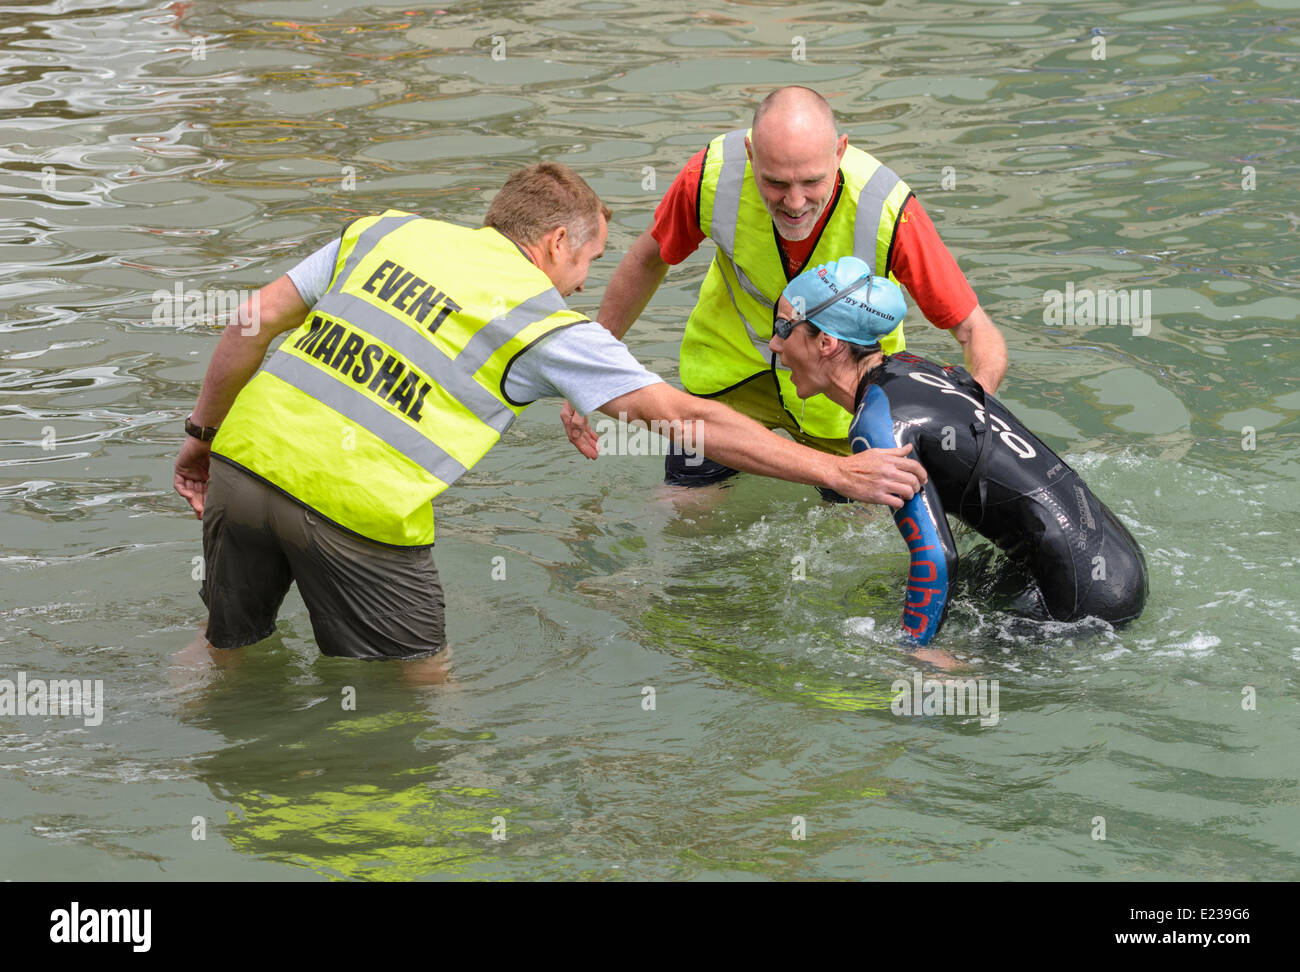 Swimmer being helped out of the river after finishing a swimming race. - Stock Image